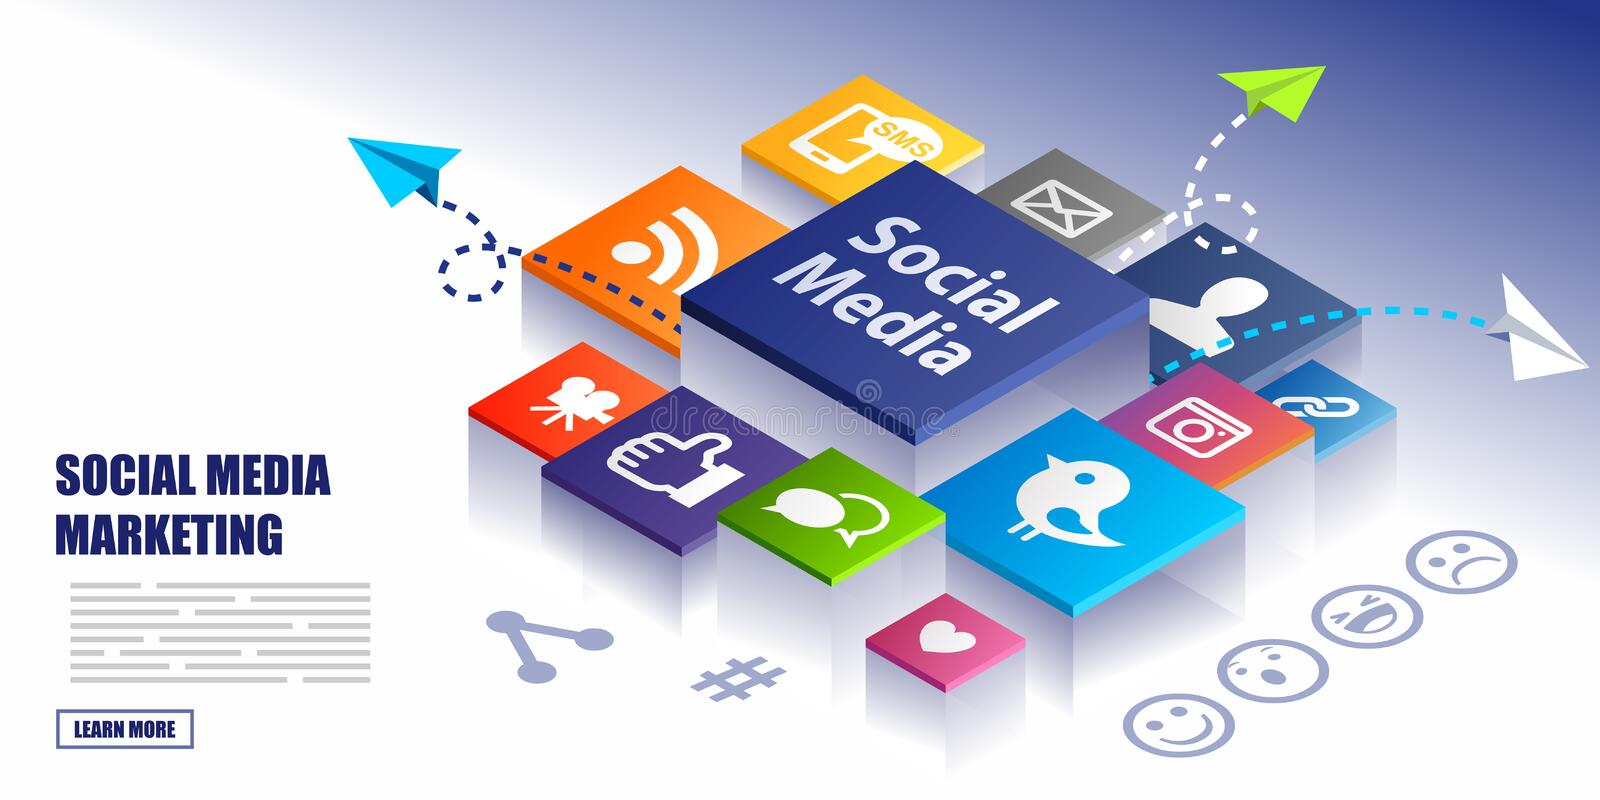 Social Media Marketing Concept Background. With various icons stock illustration